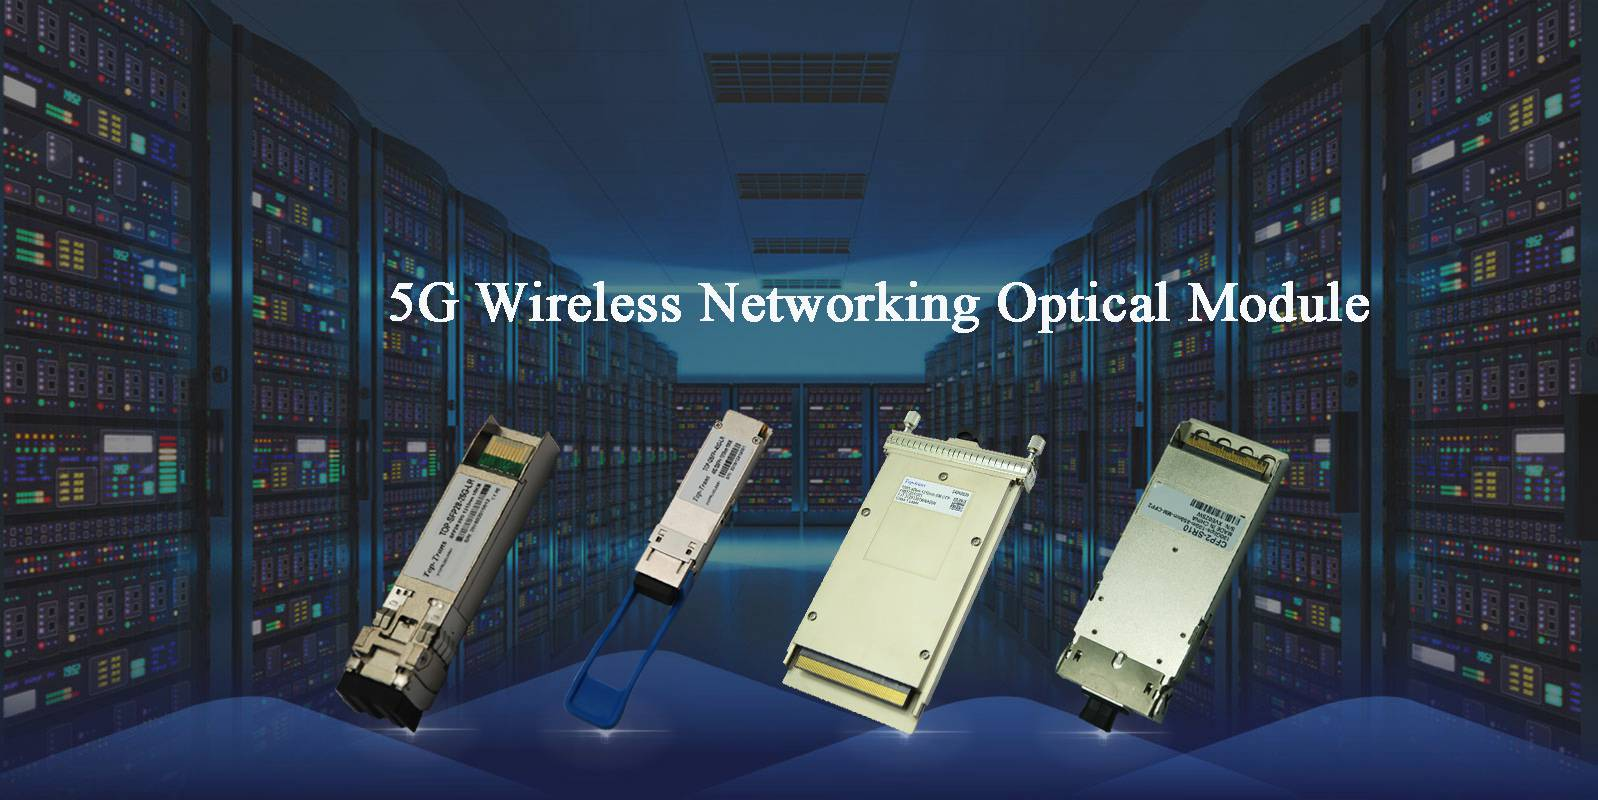 5G Wireless Network Optical Module